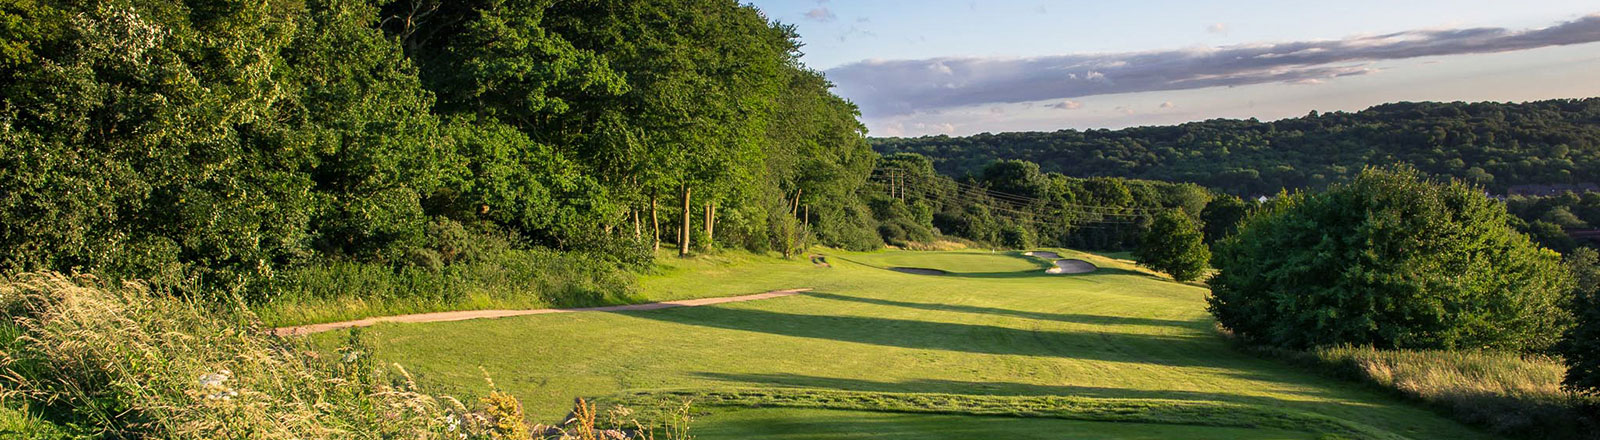 Wycombe Heights tee and par 3